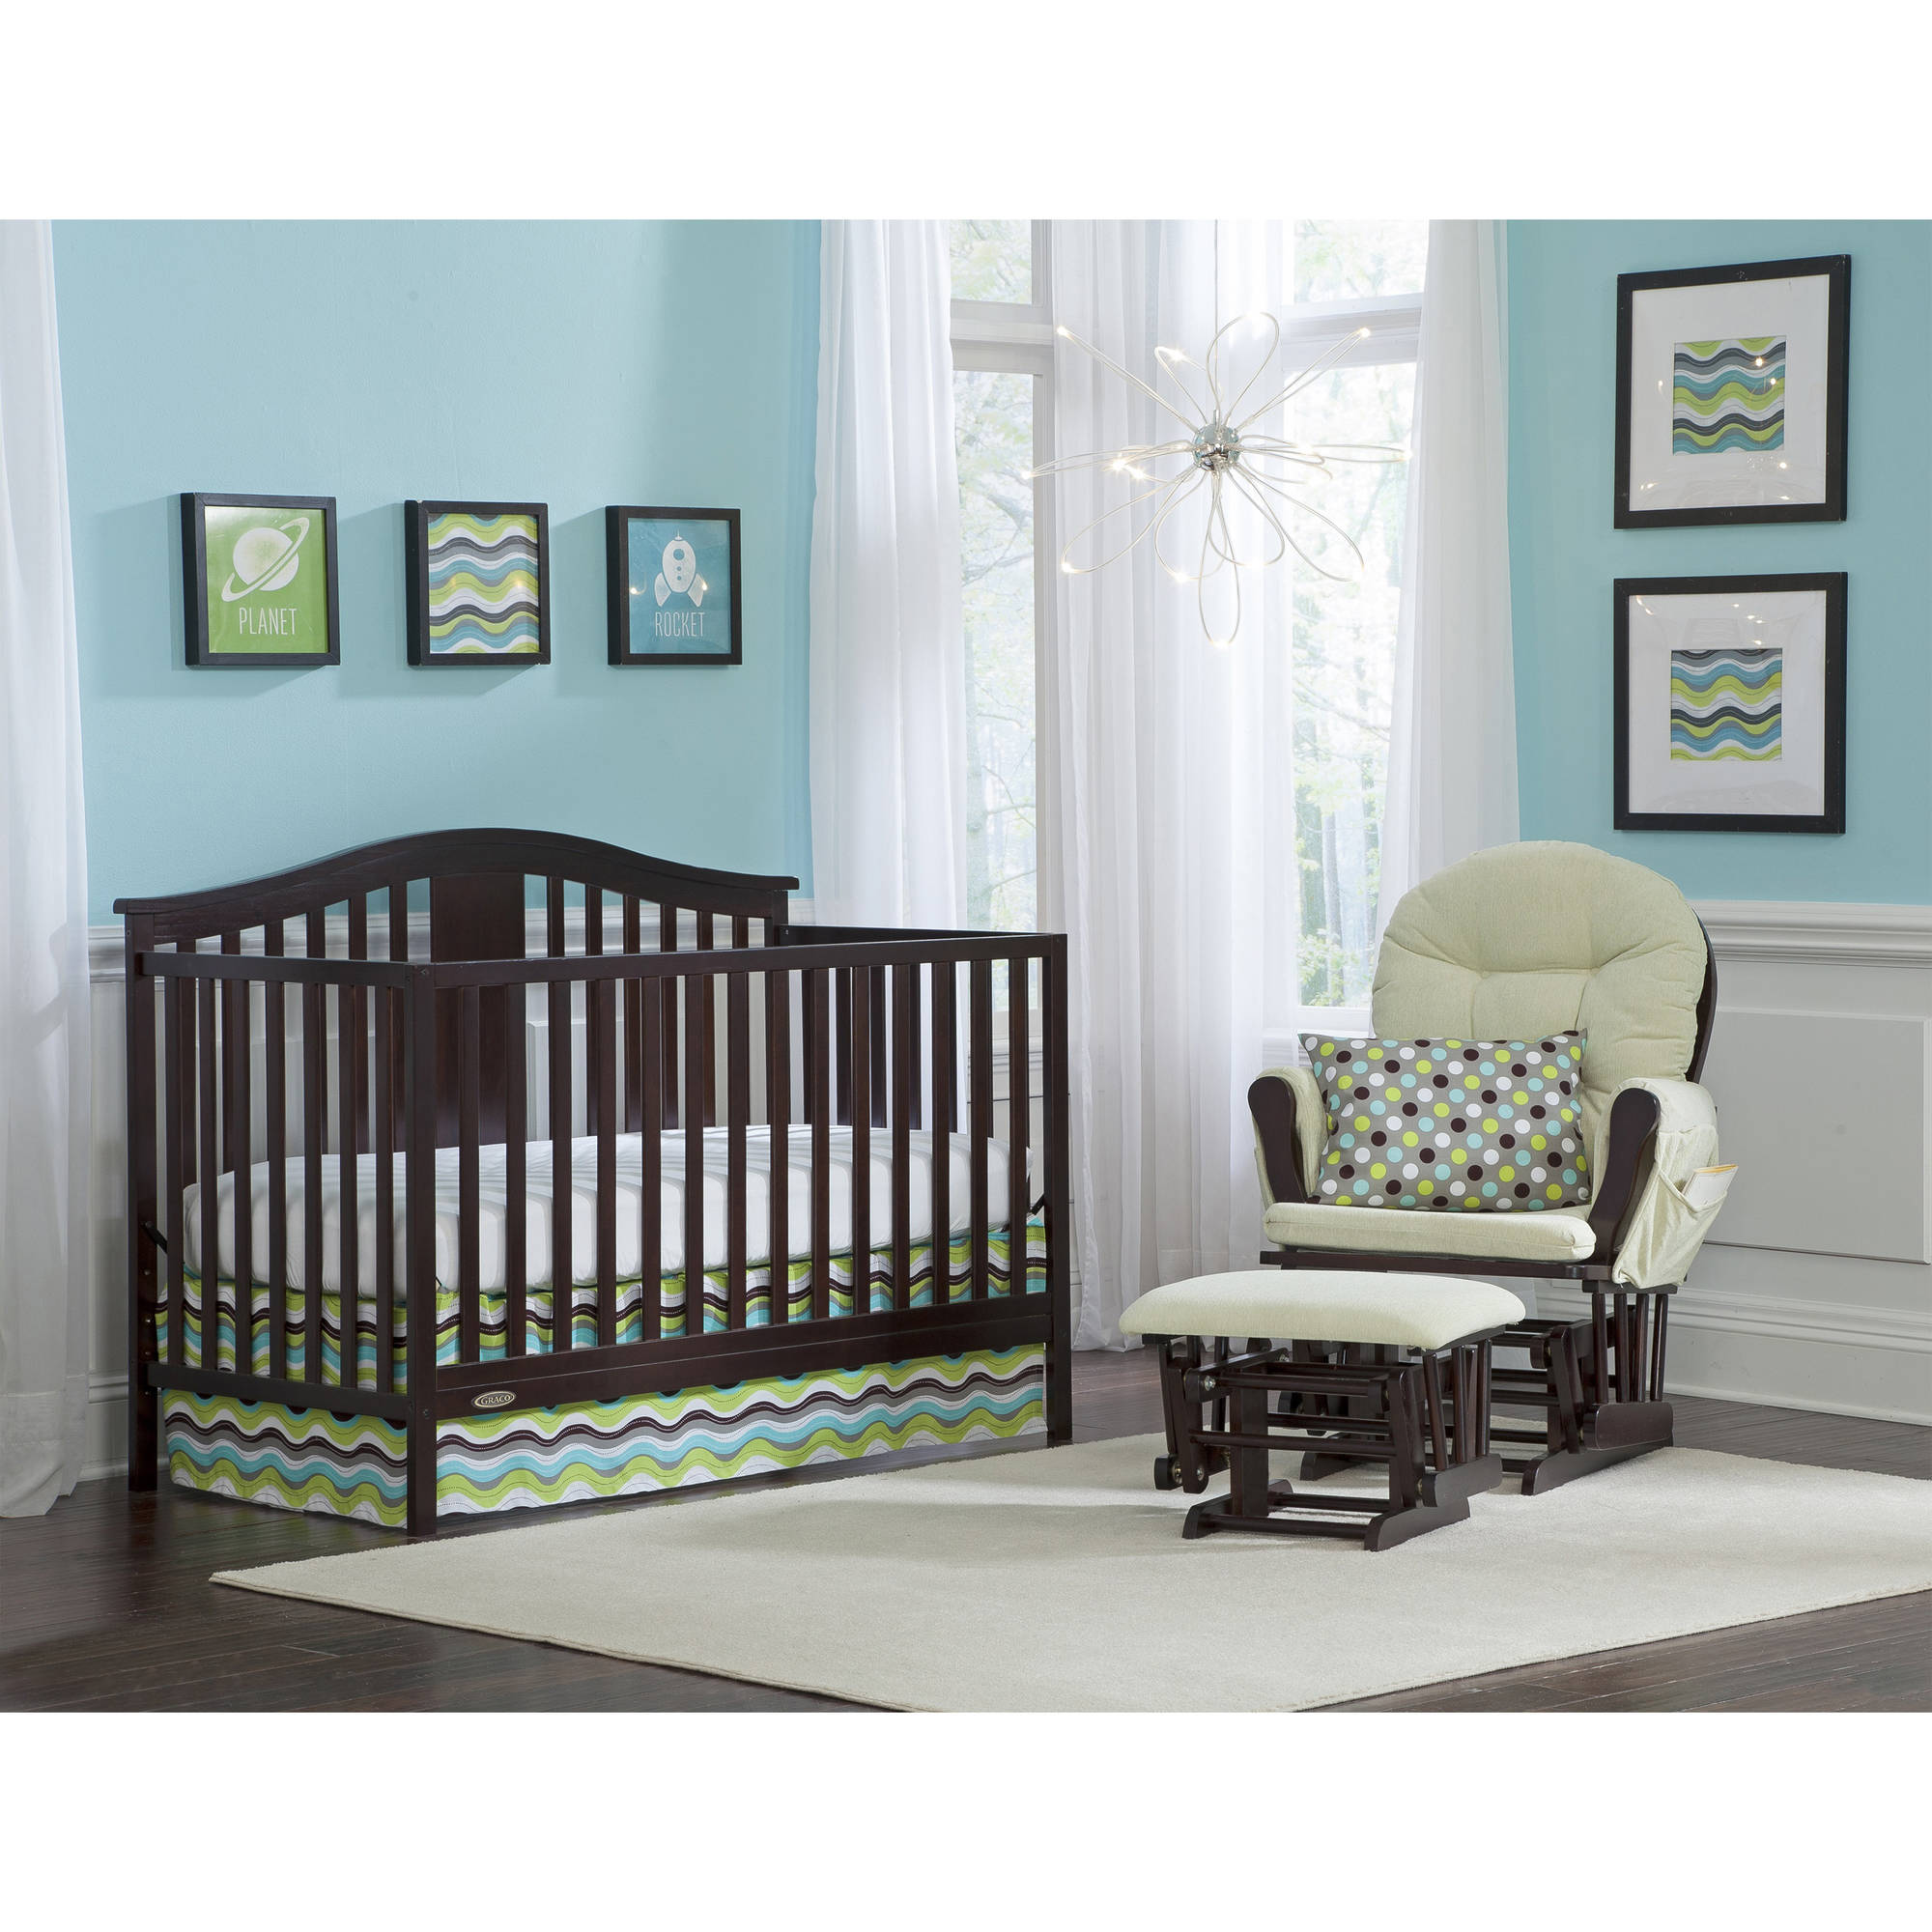 graco solano 4-in-1 convertible crib and bonus mattress, multiple